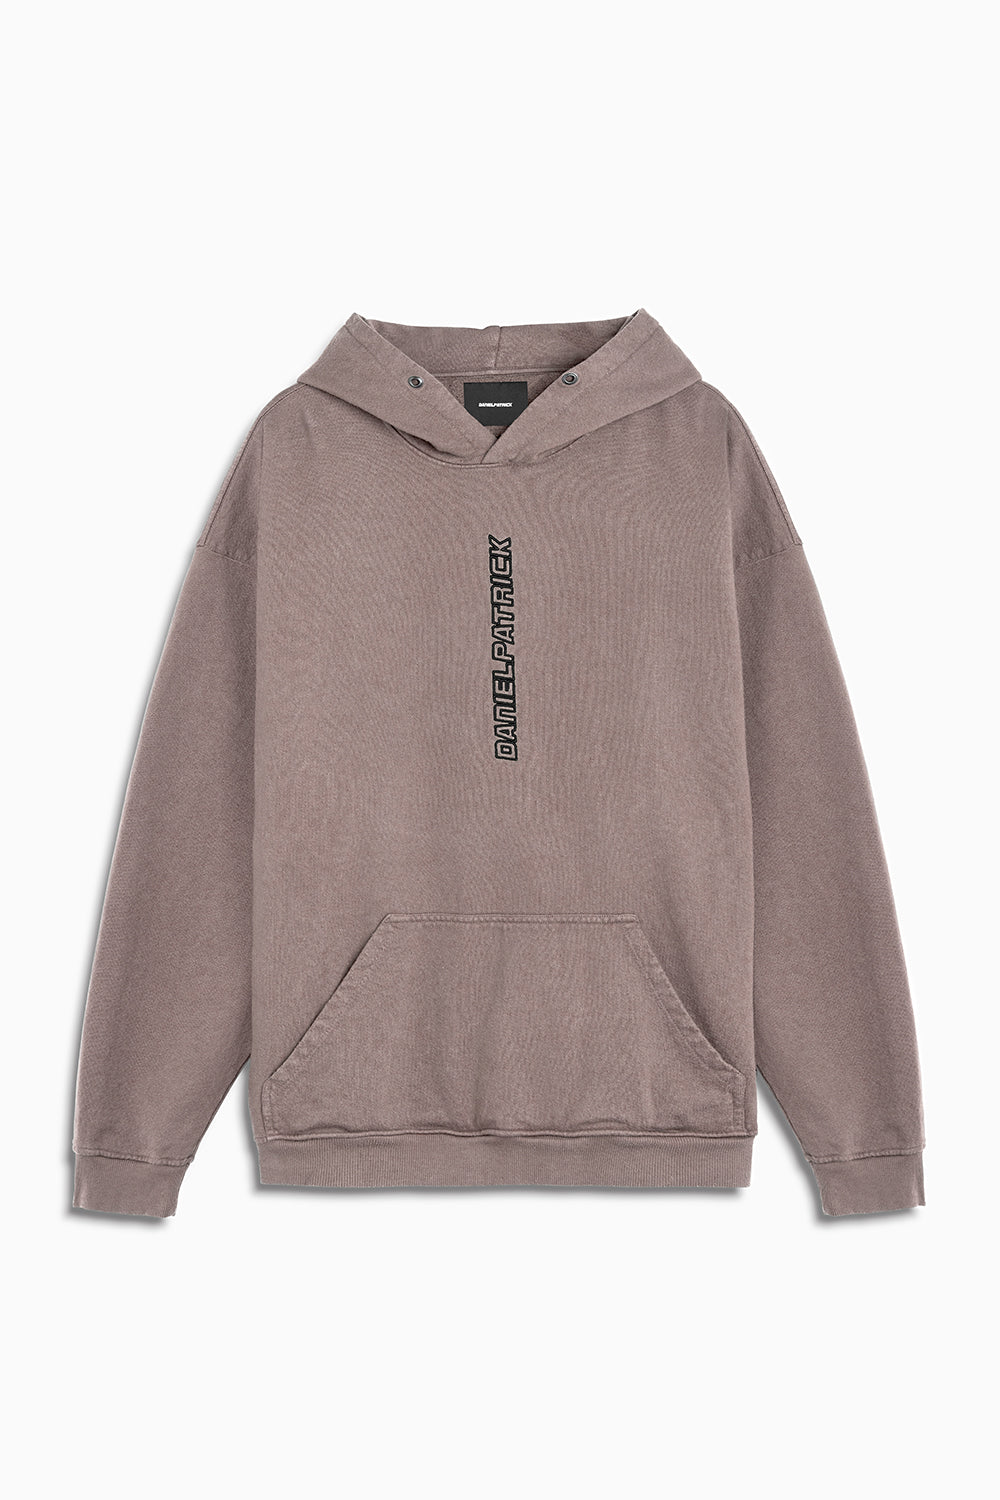 vertical logo hoodie in dust/black by daniel patrick